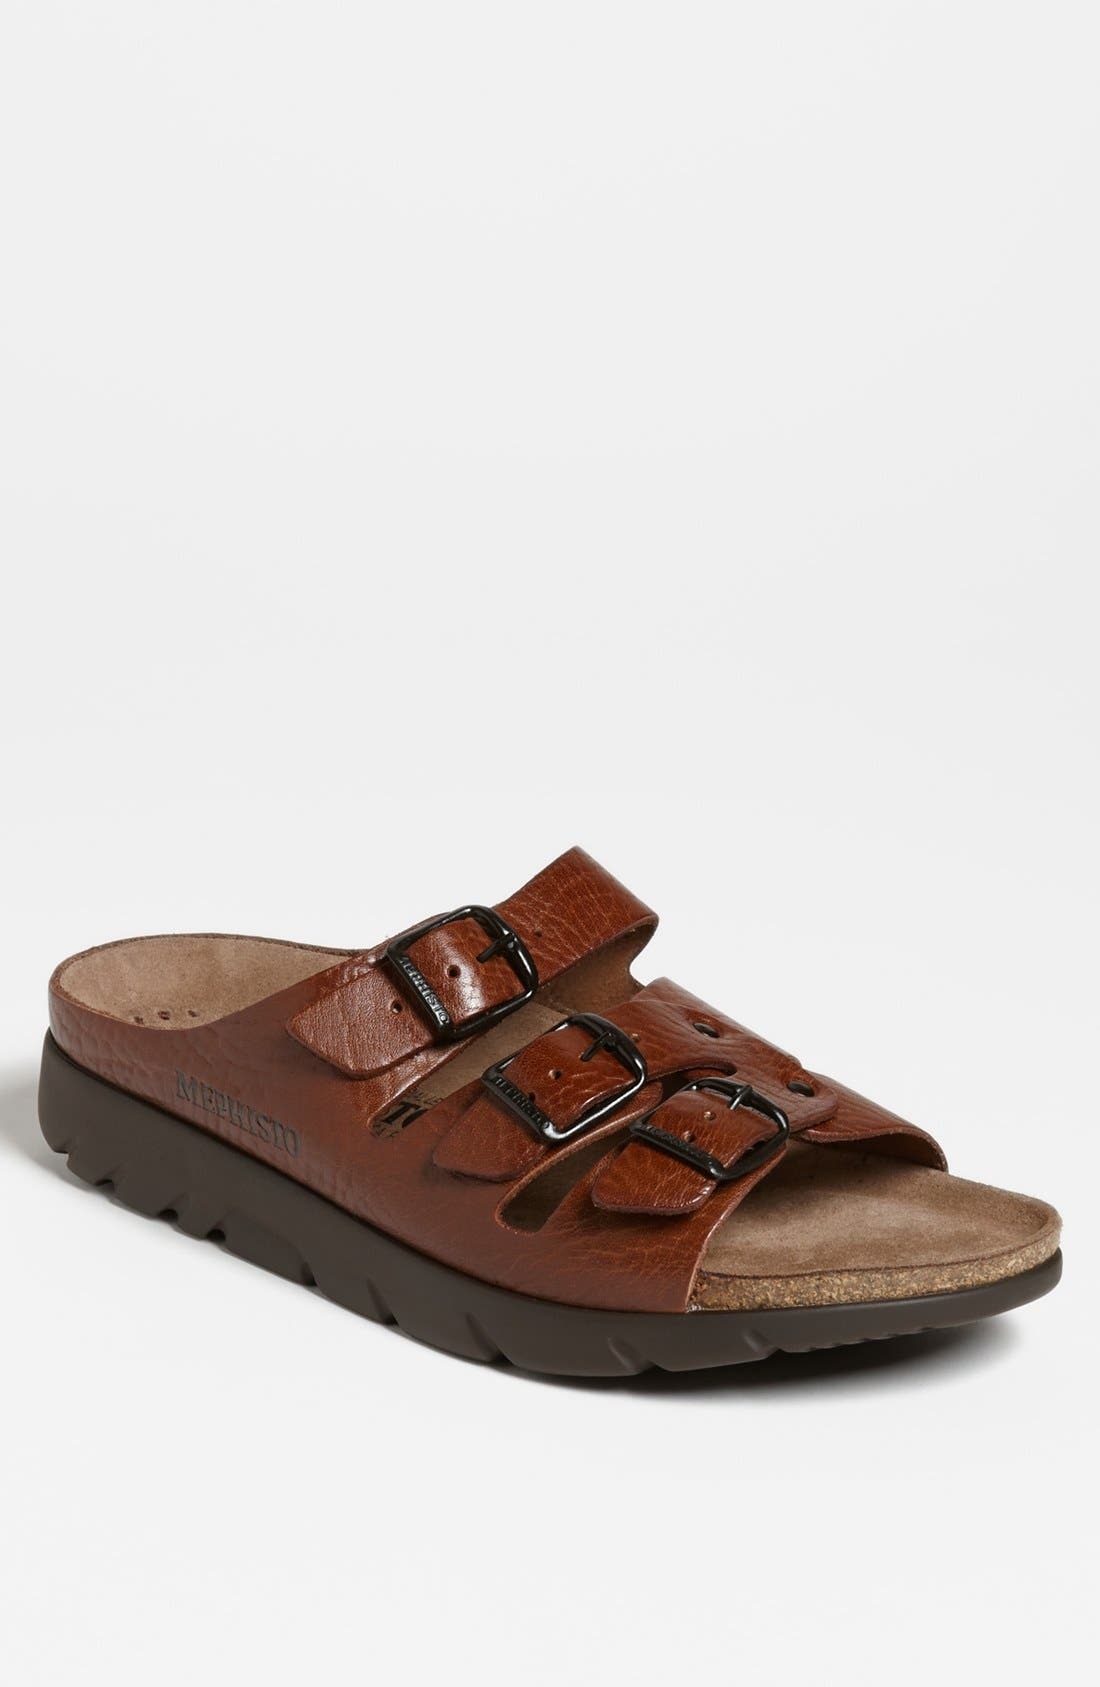 MEPHISTO 'Zach 3' Sandal, Main, color, TAN GRAIN